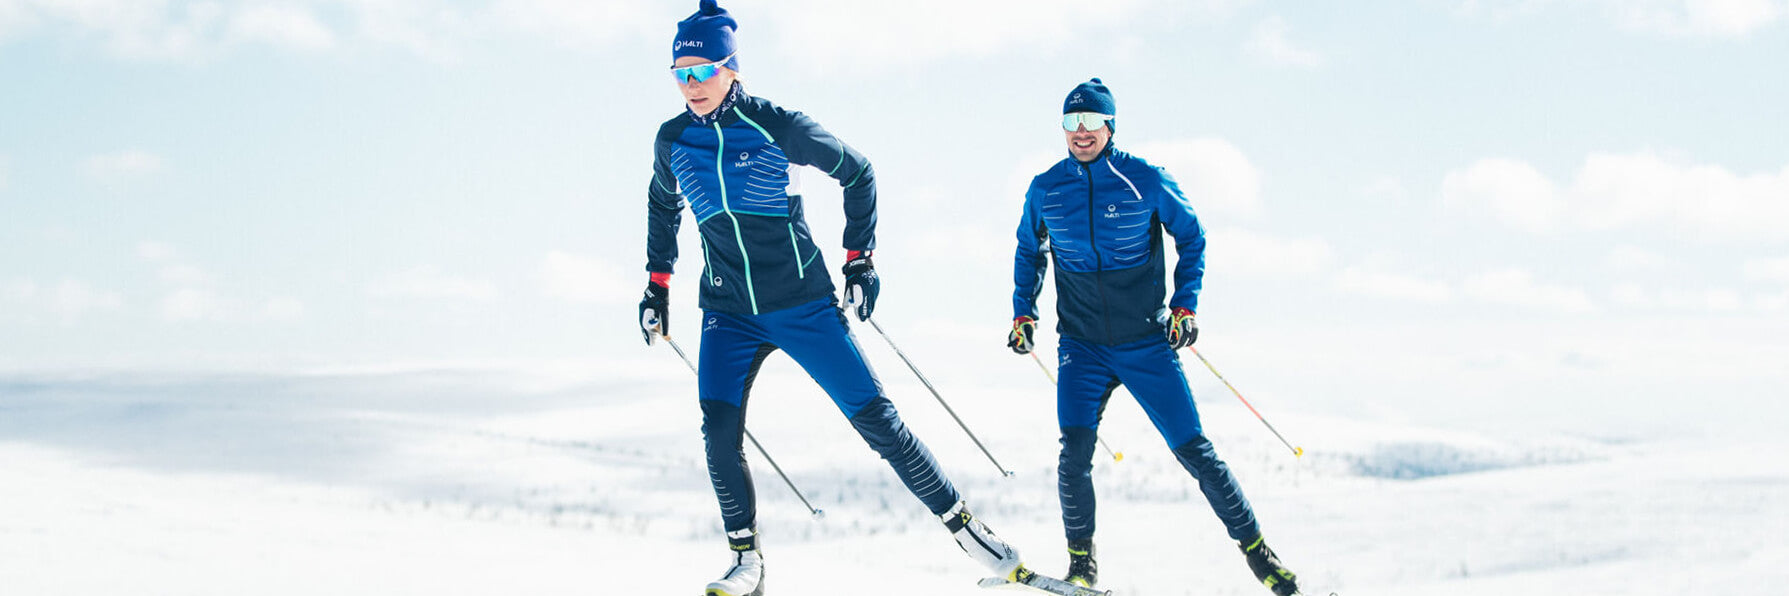 Clothing for Cross-country skiing - Halti Global Store aab45c345